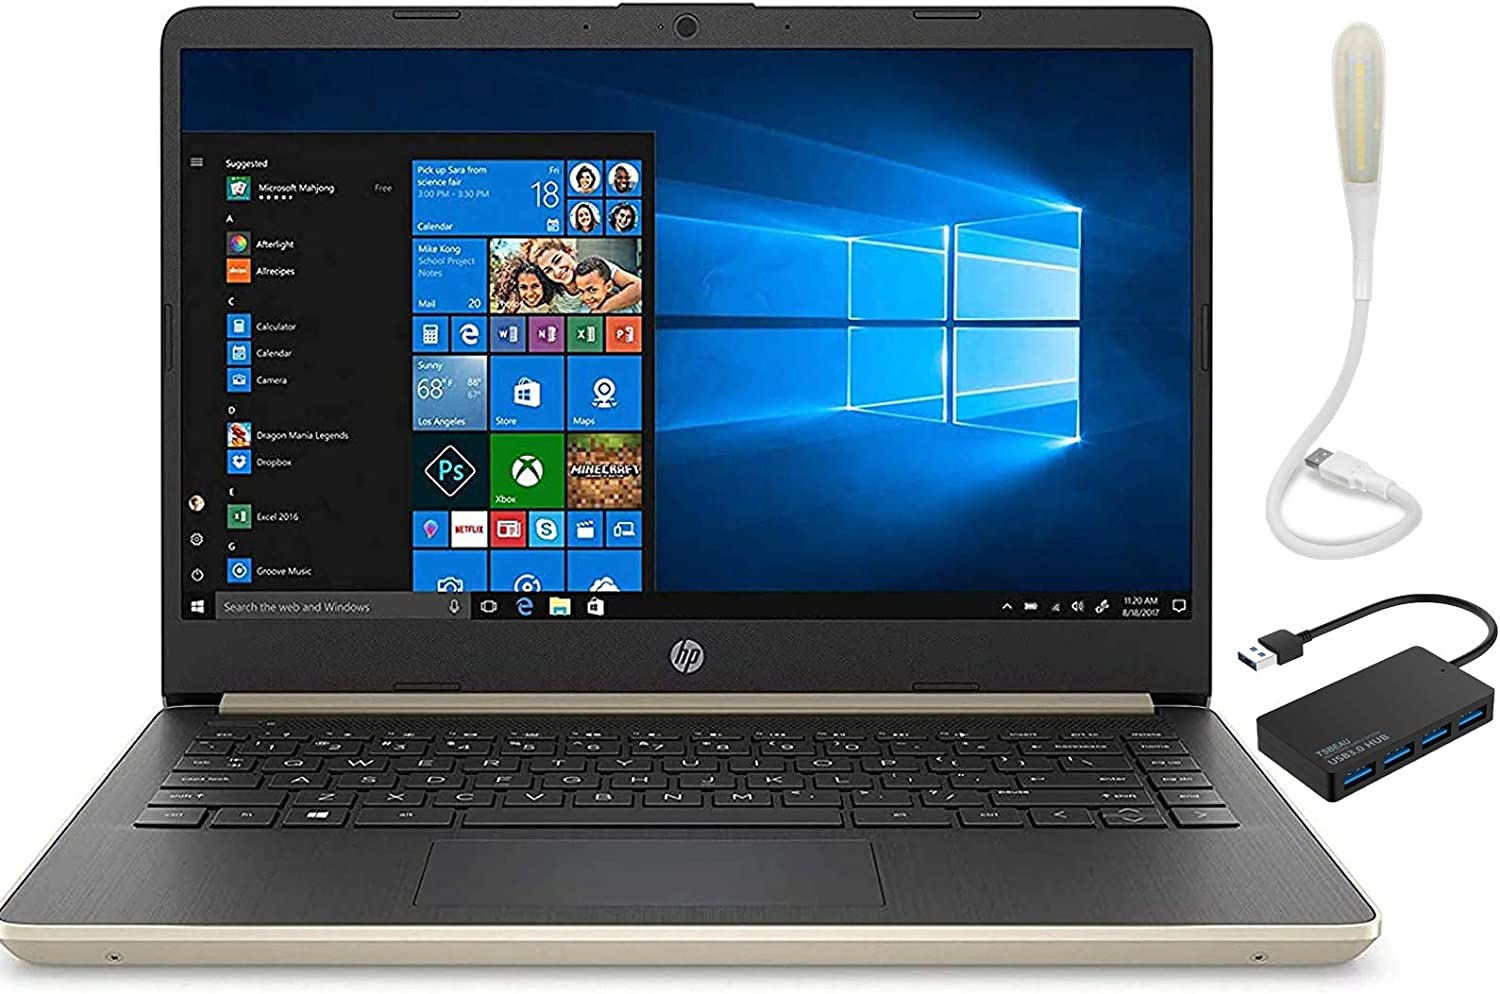 HP 14 Laptop, Intel Core i5-1035G1 Upto 3.6GHz, 16GB RAM, 256GB SSD+16GB Optane, HDMI, Webcam, Bluetooth, Windows 10 Home,Pale Gold, Bundled with TSBEAU 4 Port USB 3.0 Hub + USB LED Light